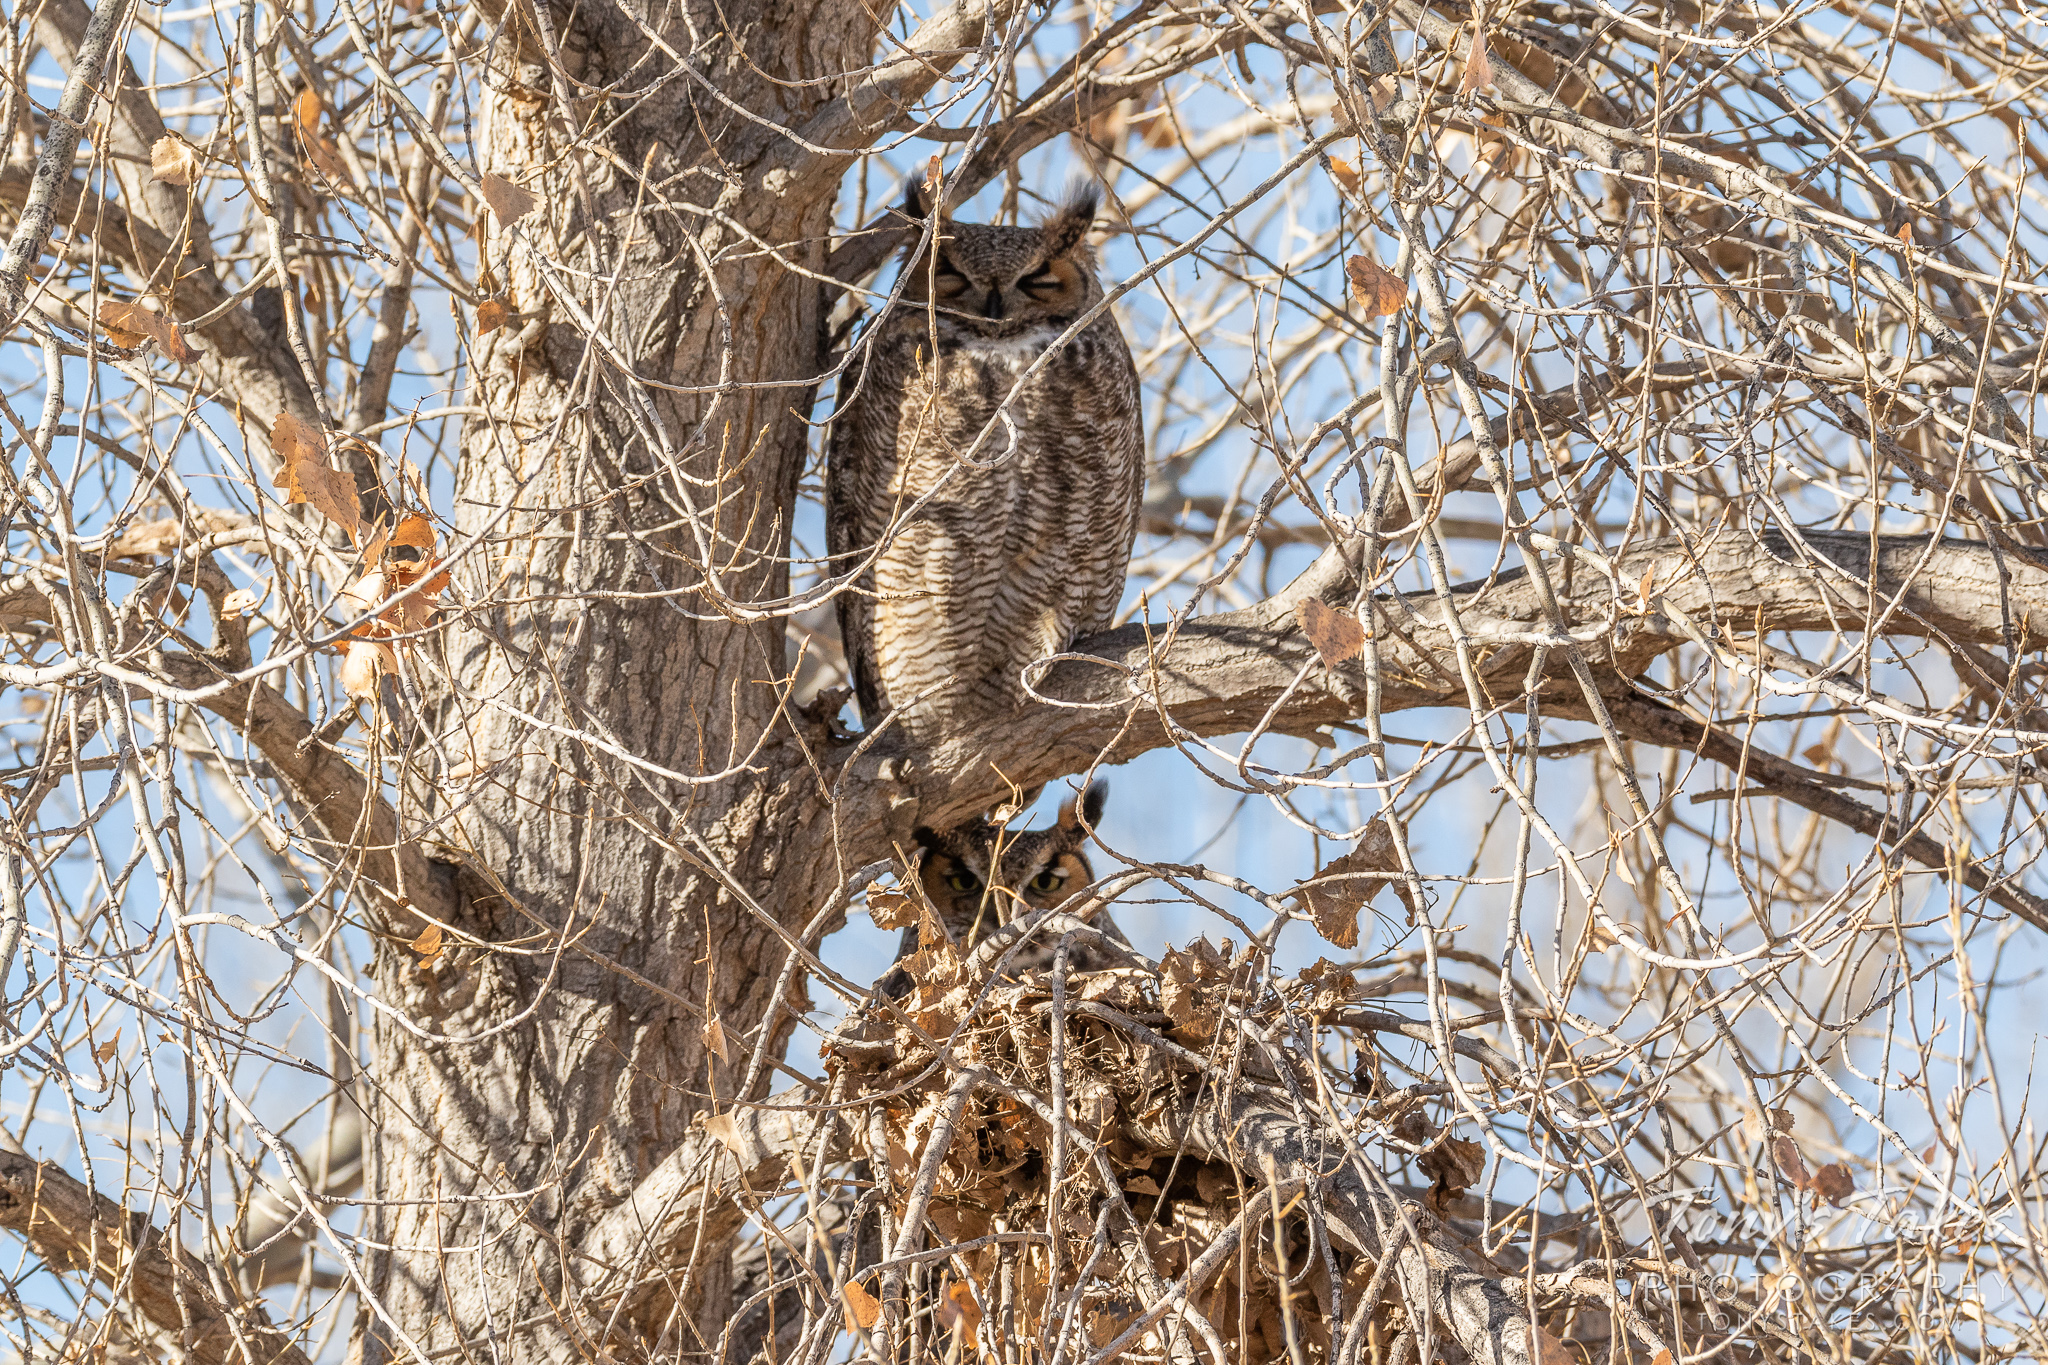 Great horned owls showcase their ability to hide